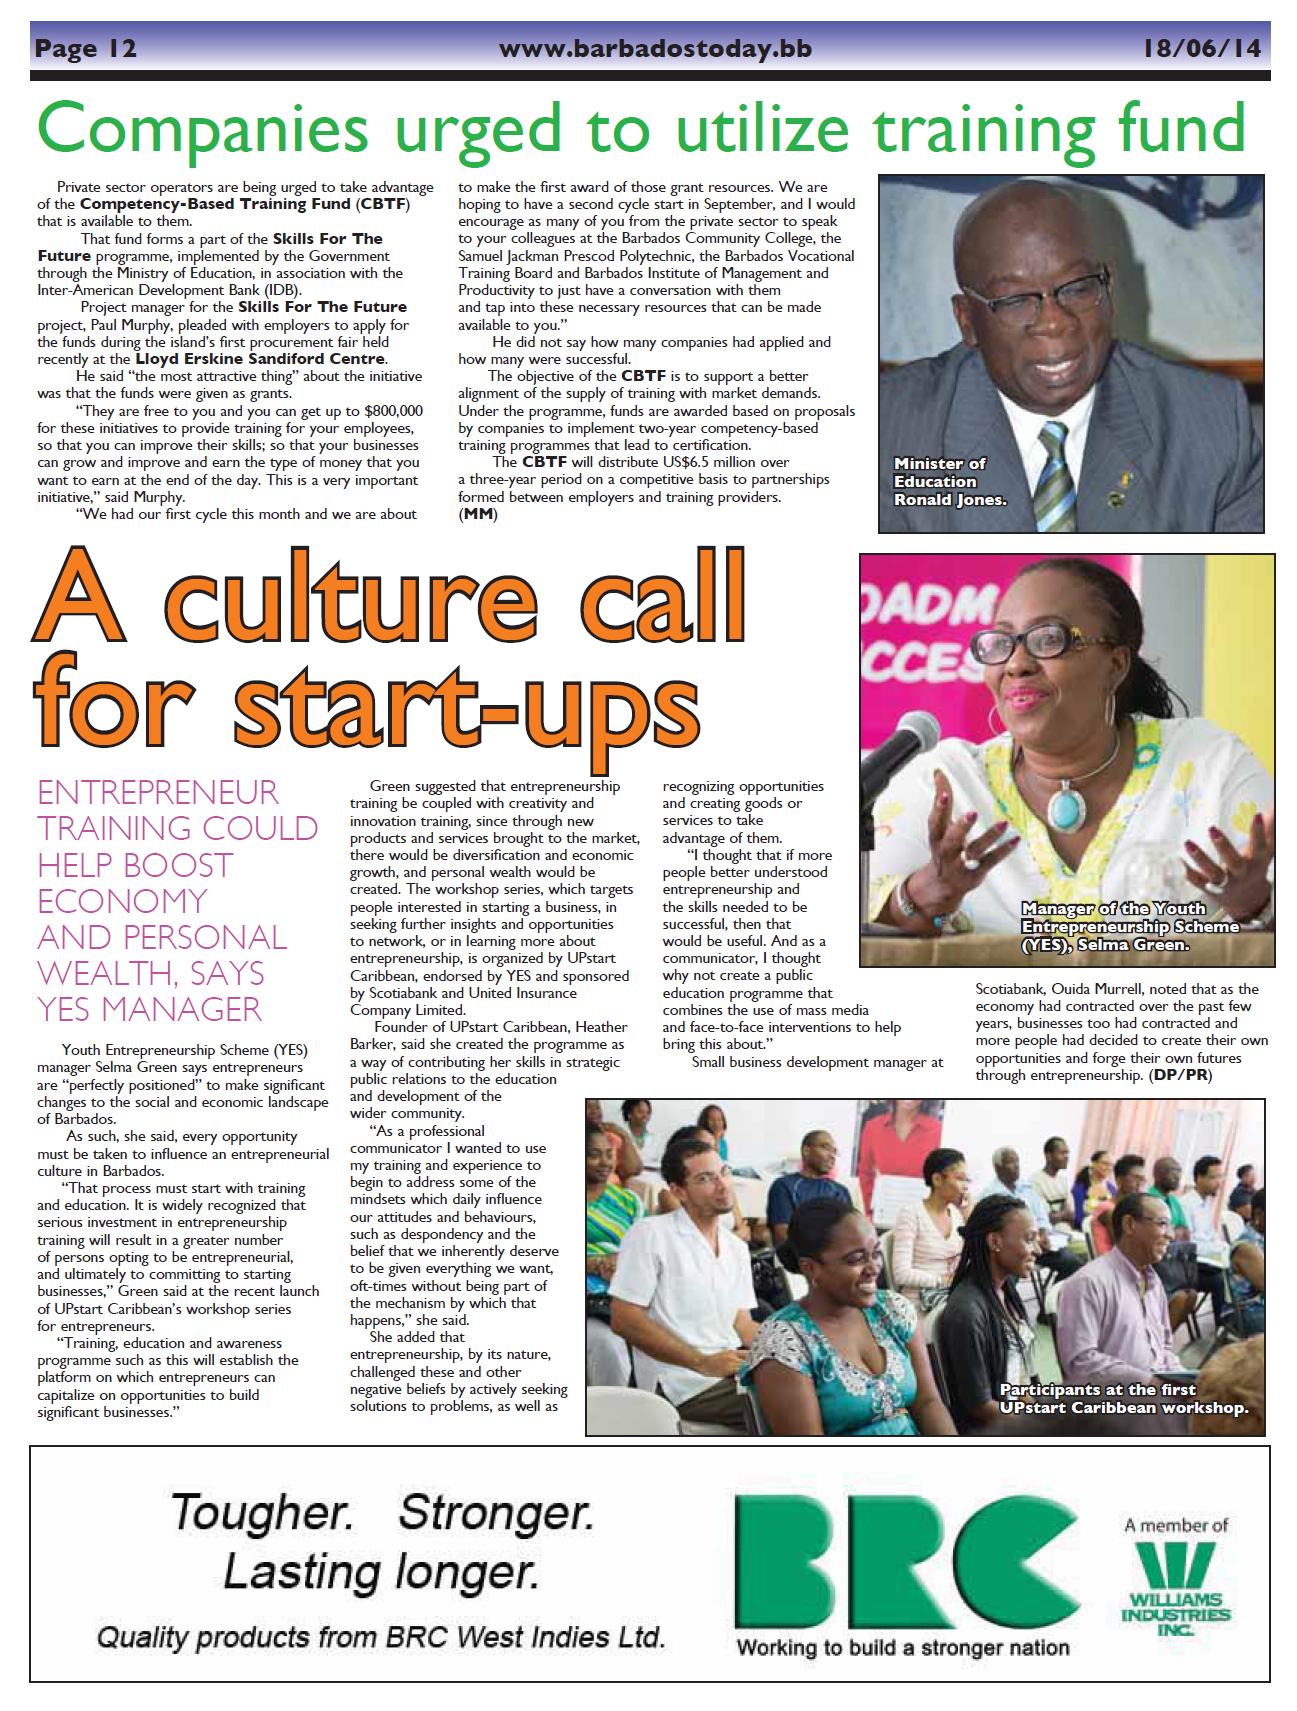 A Culture Call for Start ups (Barbados Today) – June 18, 2014